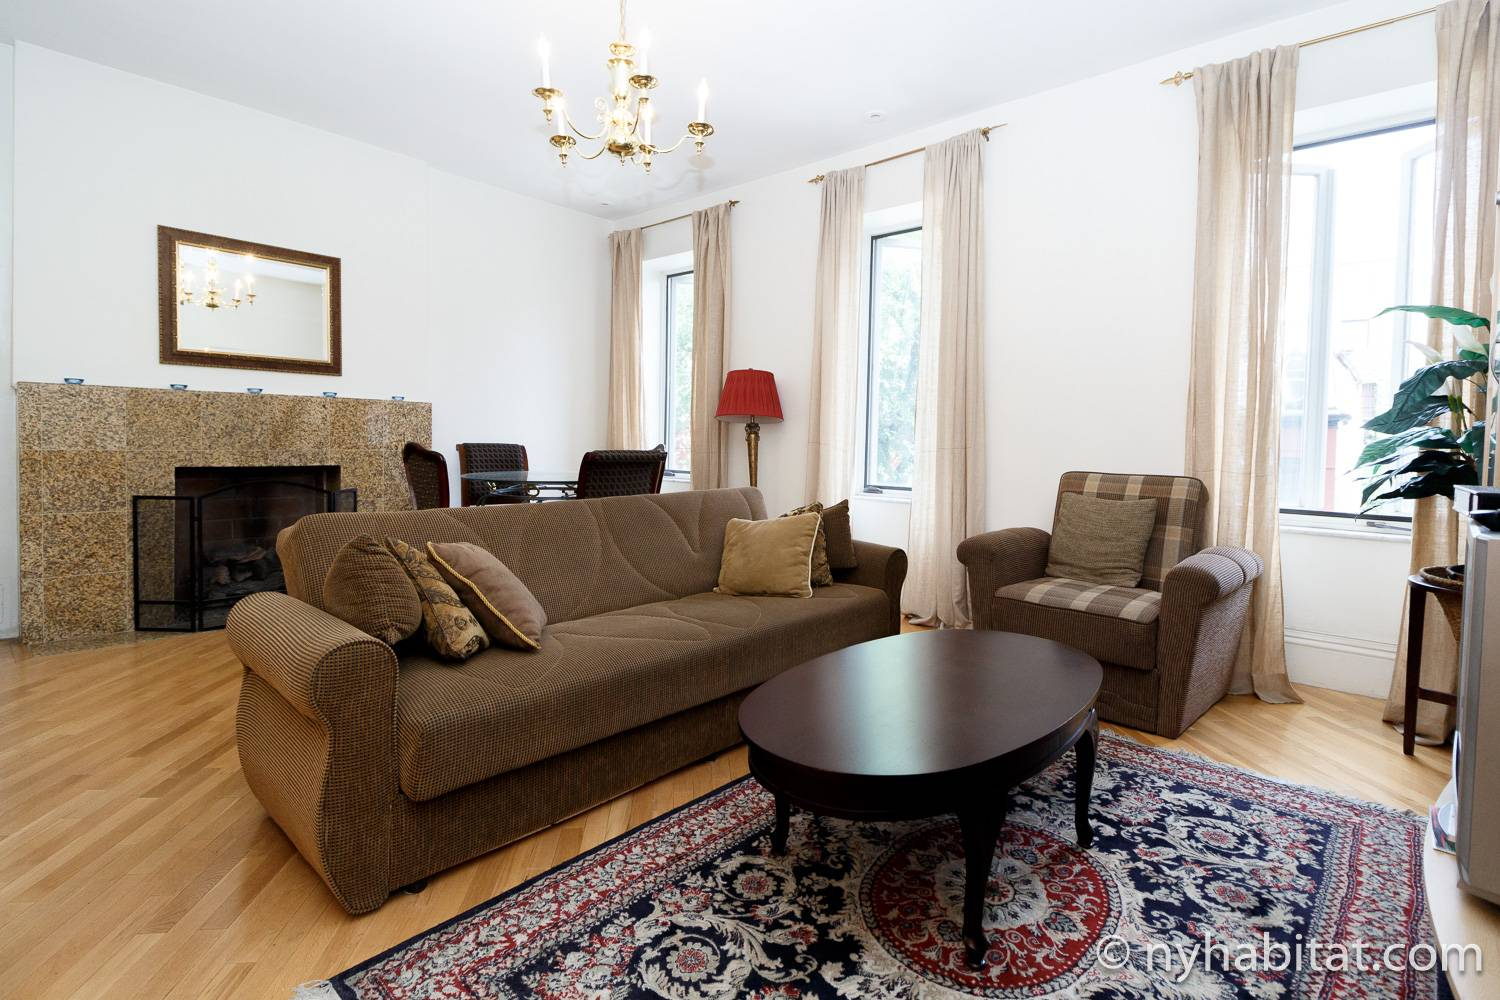 Image of living room in NY-12256 with sofa, coffee table, and working fireplace.